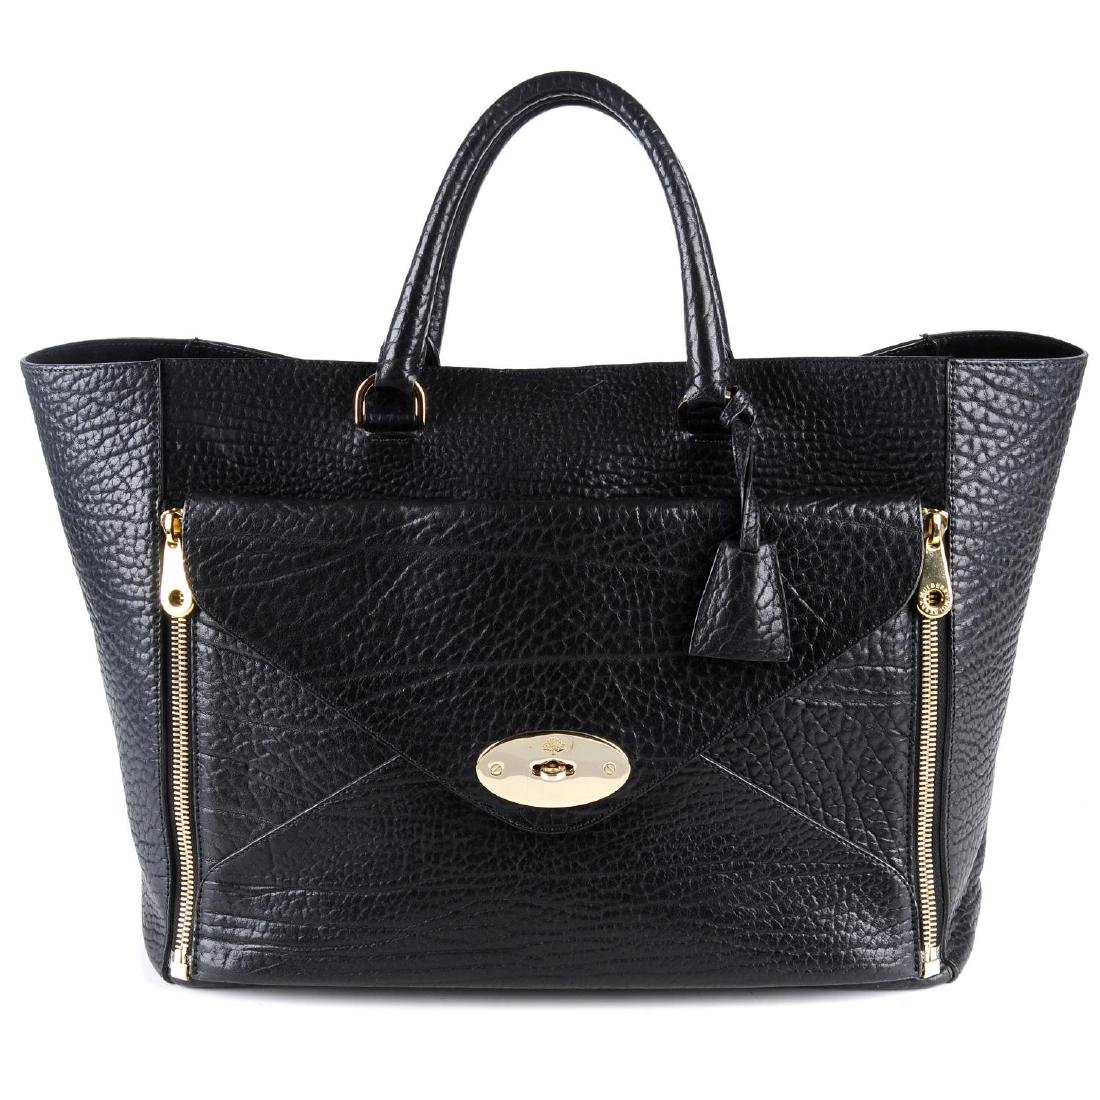 MULBERRY - a large Willow Tote handbag. Crafted from